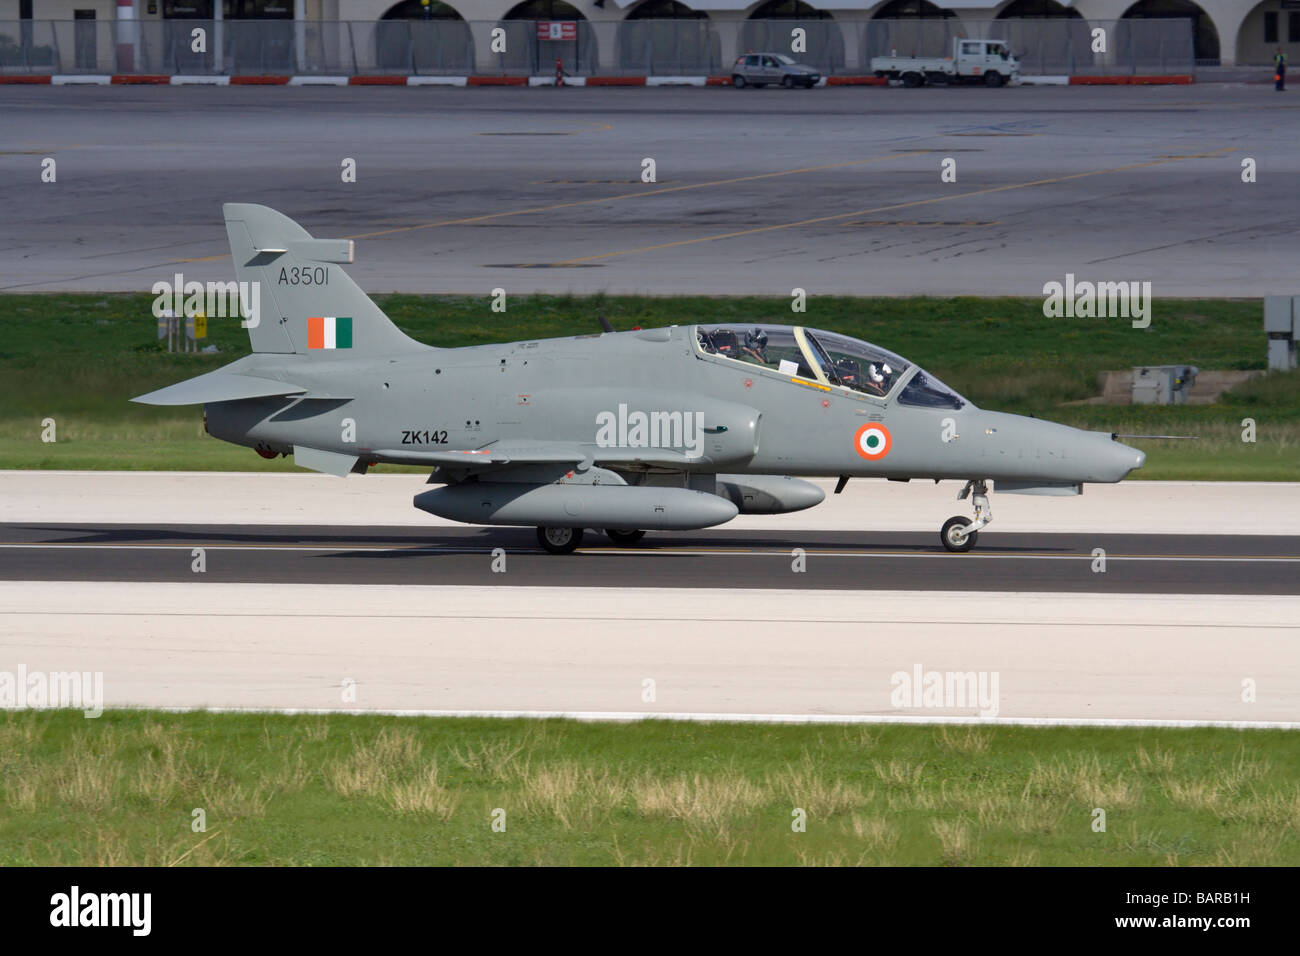 Military aviation. BAE Systems Hawk 132 trainer plane of the Indian Air Force - Stock Image